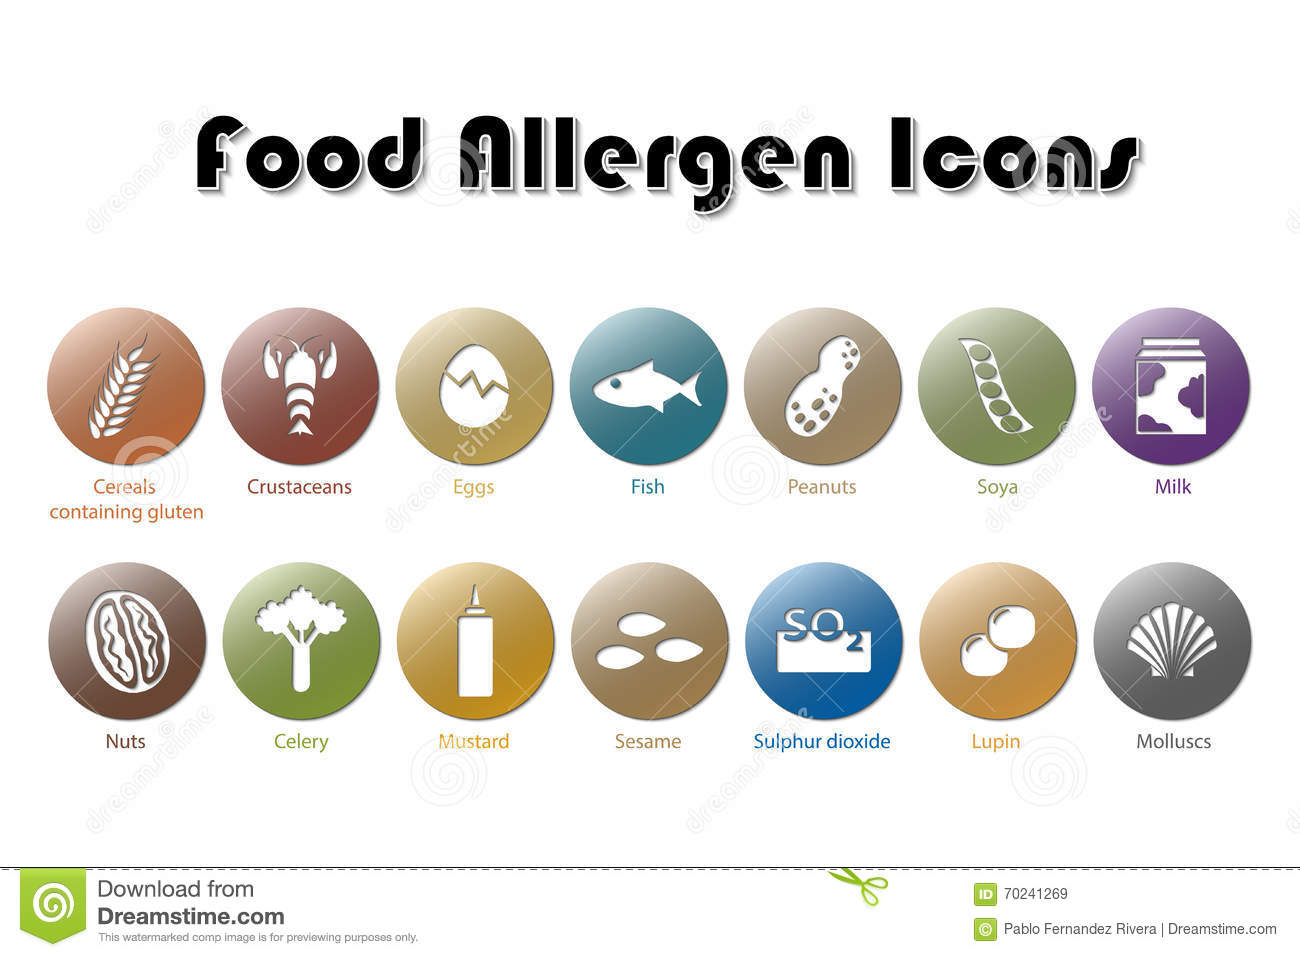 Food allergen icons stock illustration image 70241269